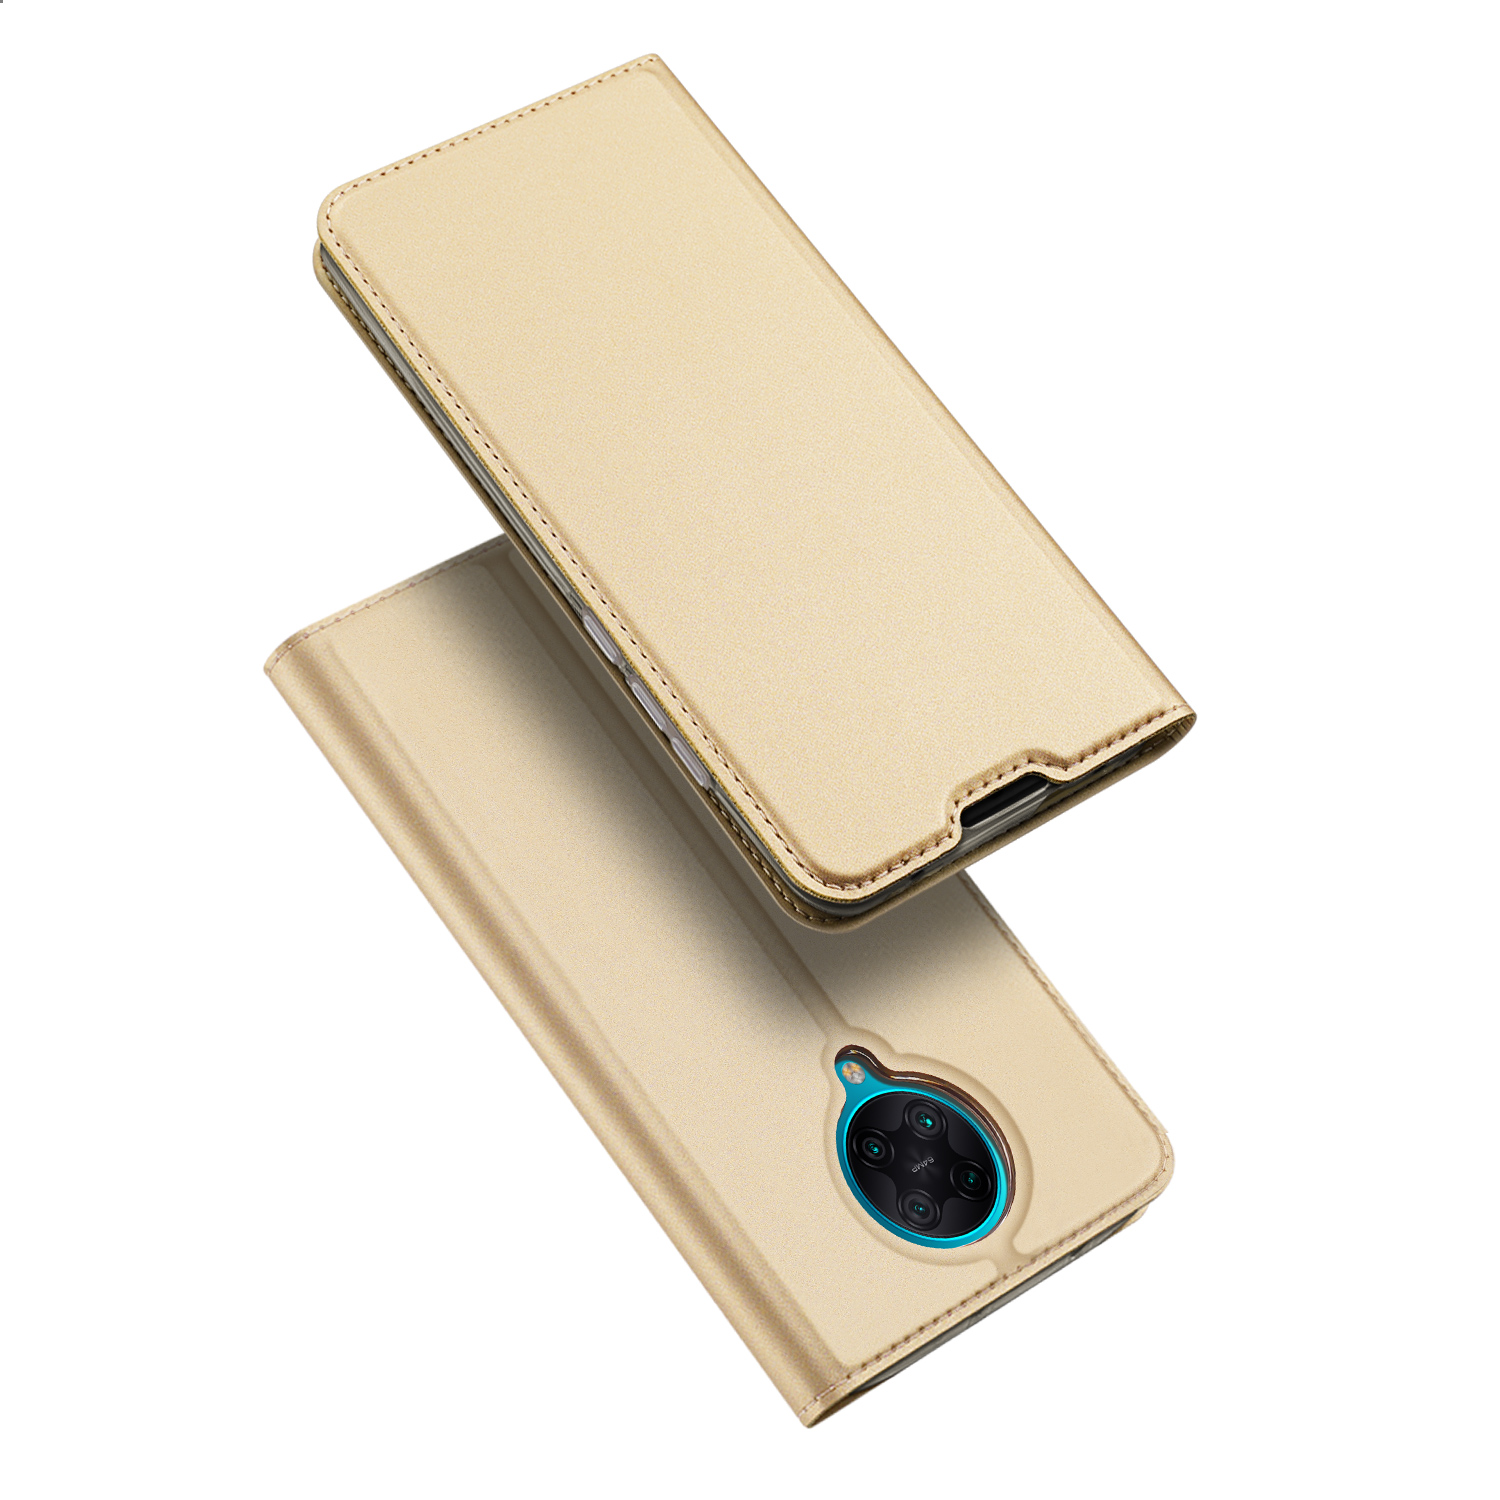 DUX DUCIS For Redmi K30 Pro Leather Mobile Phone Cover Magnetic Protective Case Bracket with Cards Slot Golden